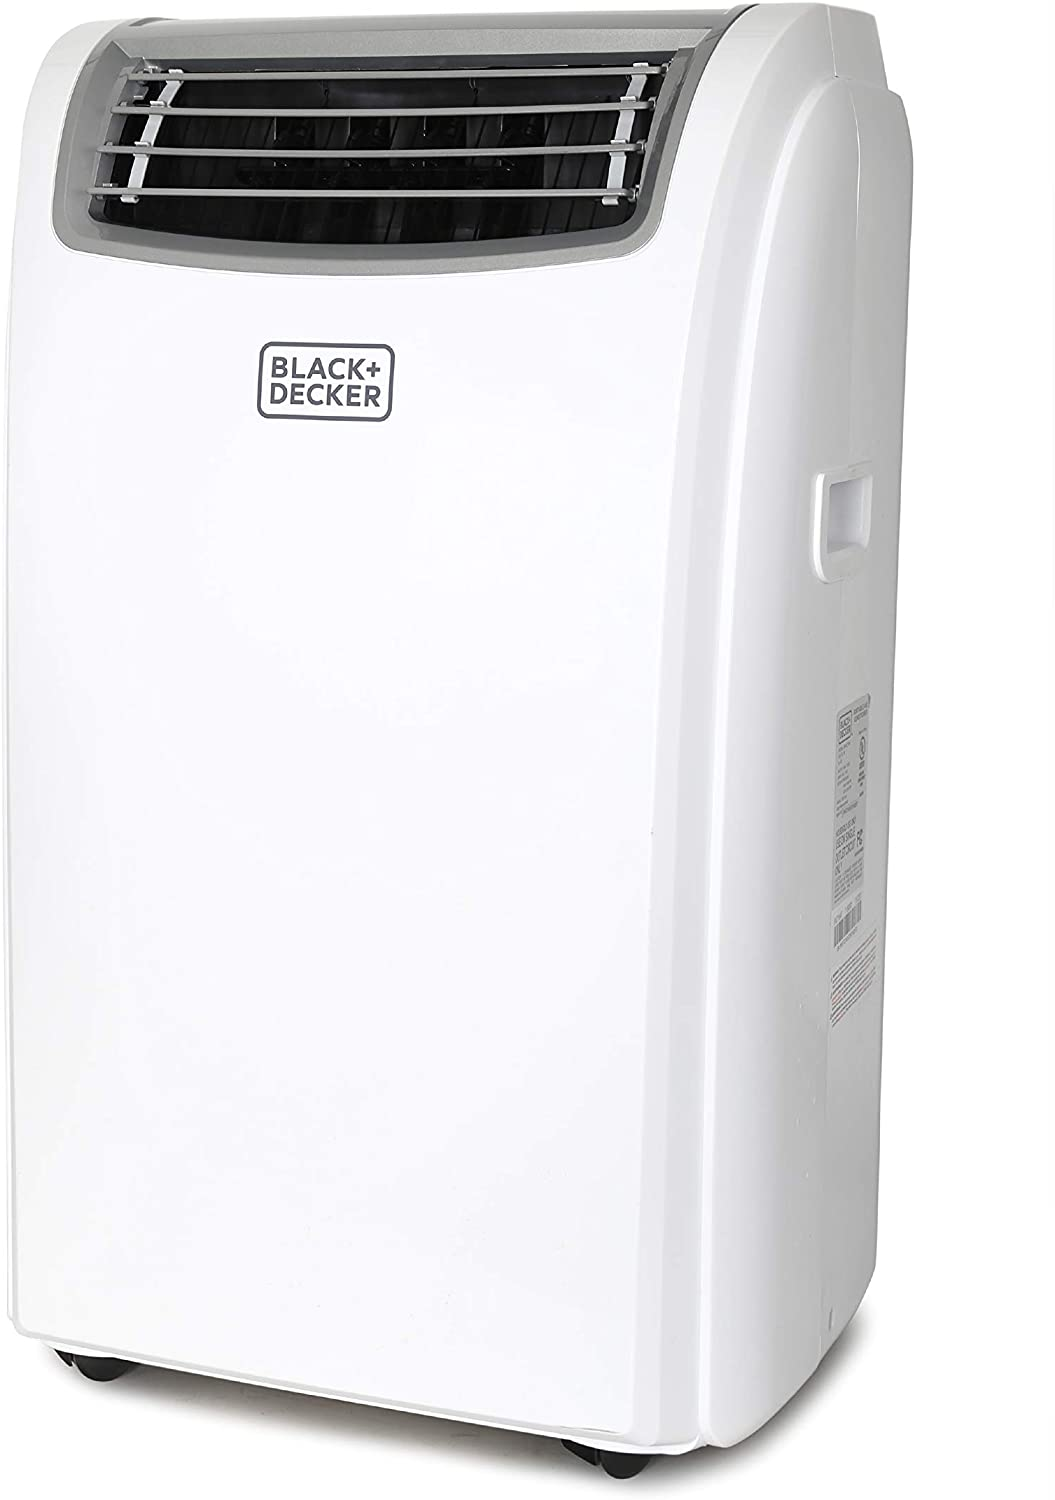 Black + Decker Portable Air Conditioner